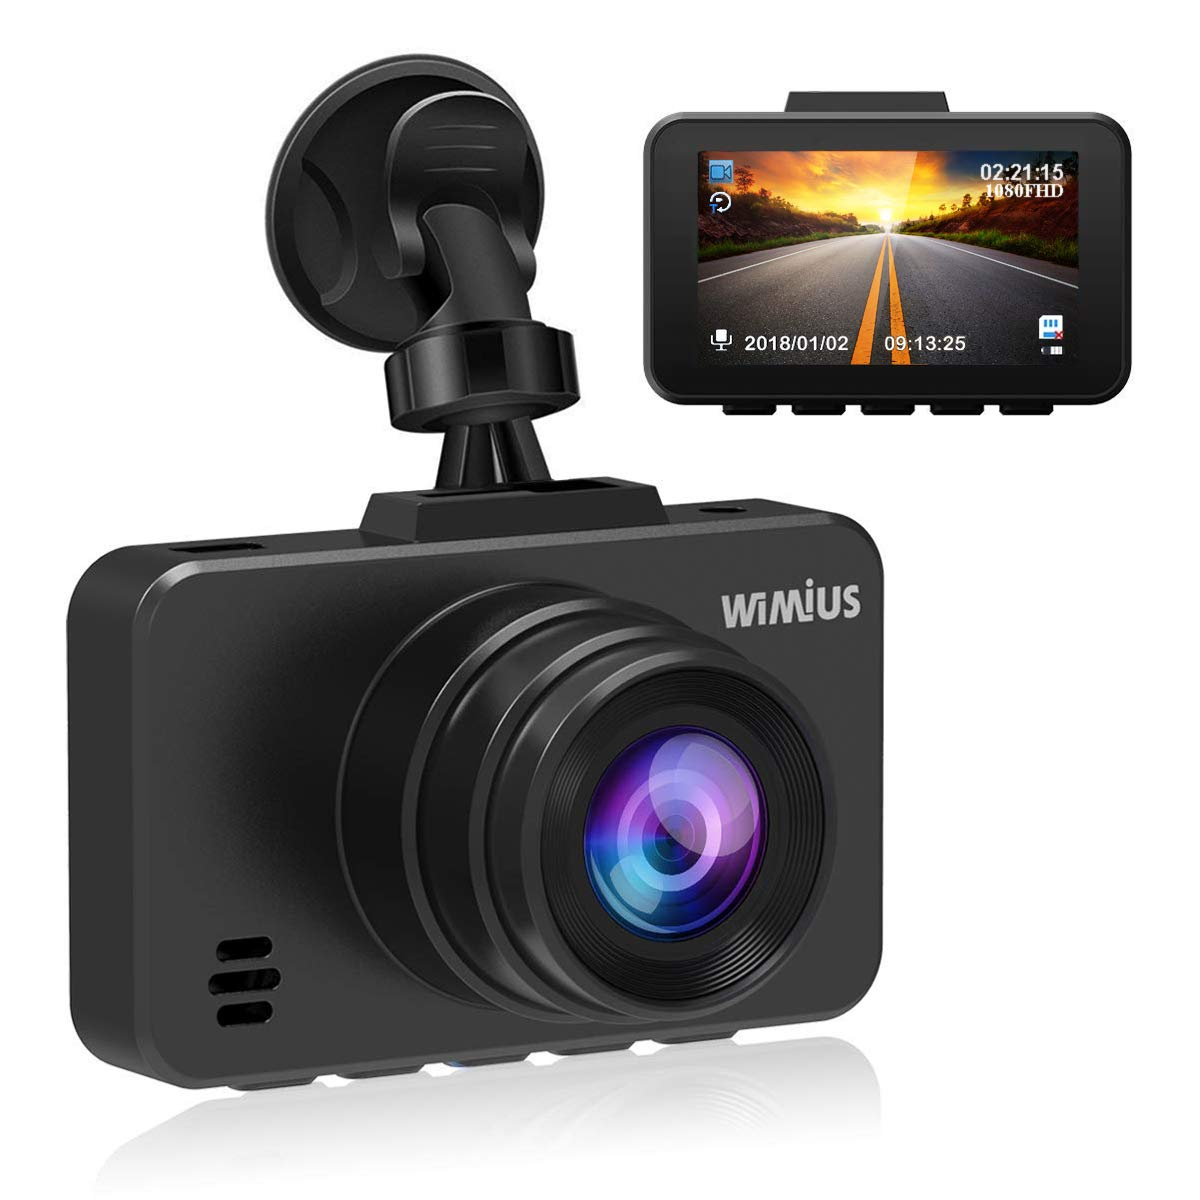 Dash Cam WiFi, WIMIUS 1080p Full HD Dash Camera for Cars, Magnetic Car Camera with Loop Recording, G-Senor, WDR, Night Vision, Motion Detection, Parking Monitor, SD Card Included-Silver